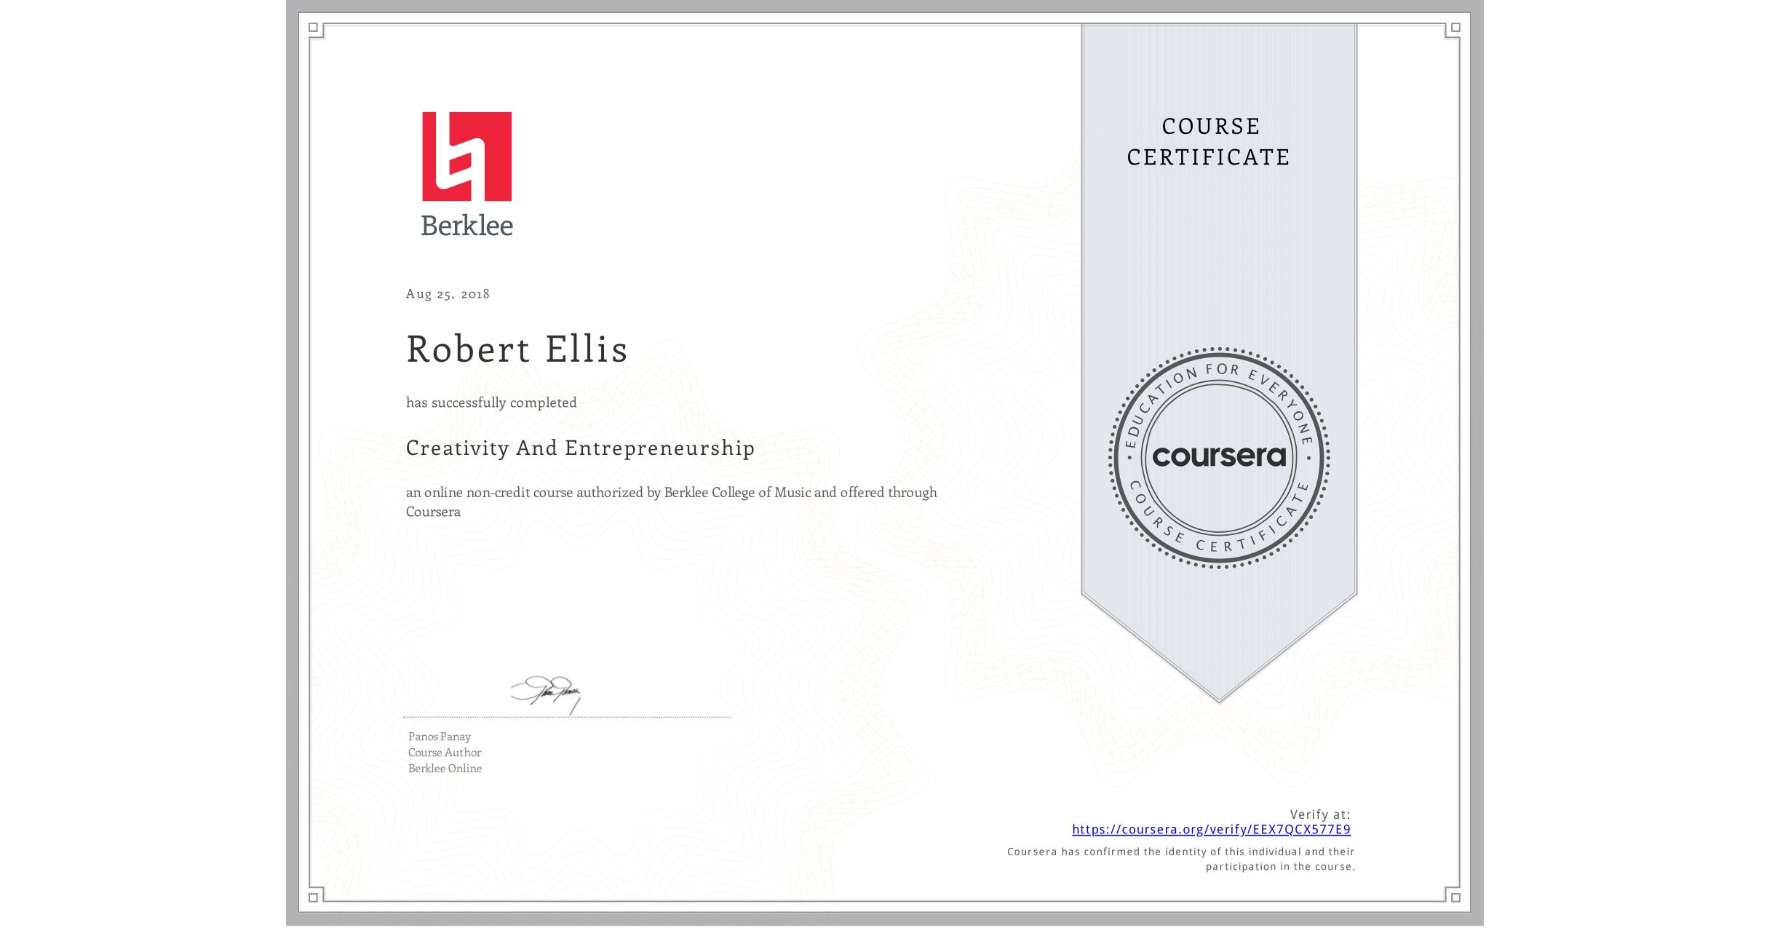 View certificate for Robert Ellis, Creativity And Entrepreneurship , an online non-credit course authorized by Berklee College of Music and offered through Coursera